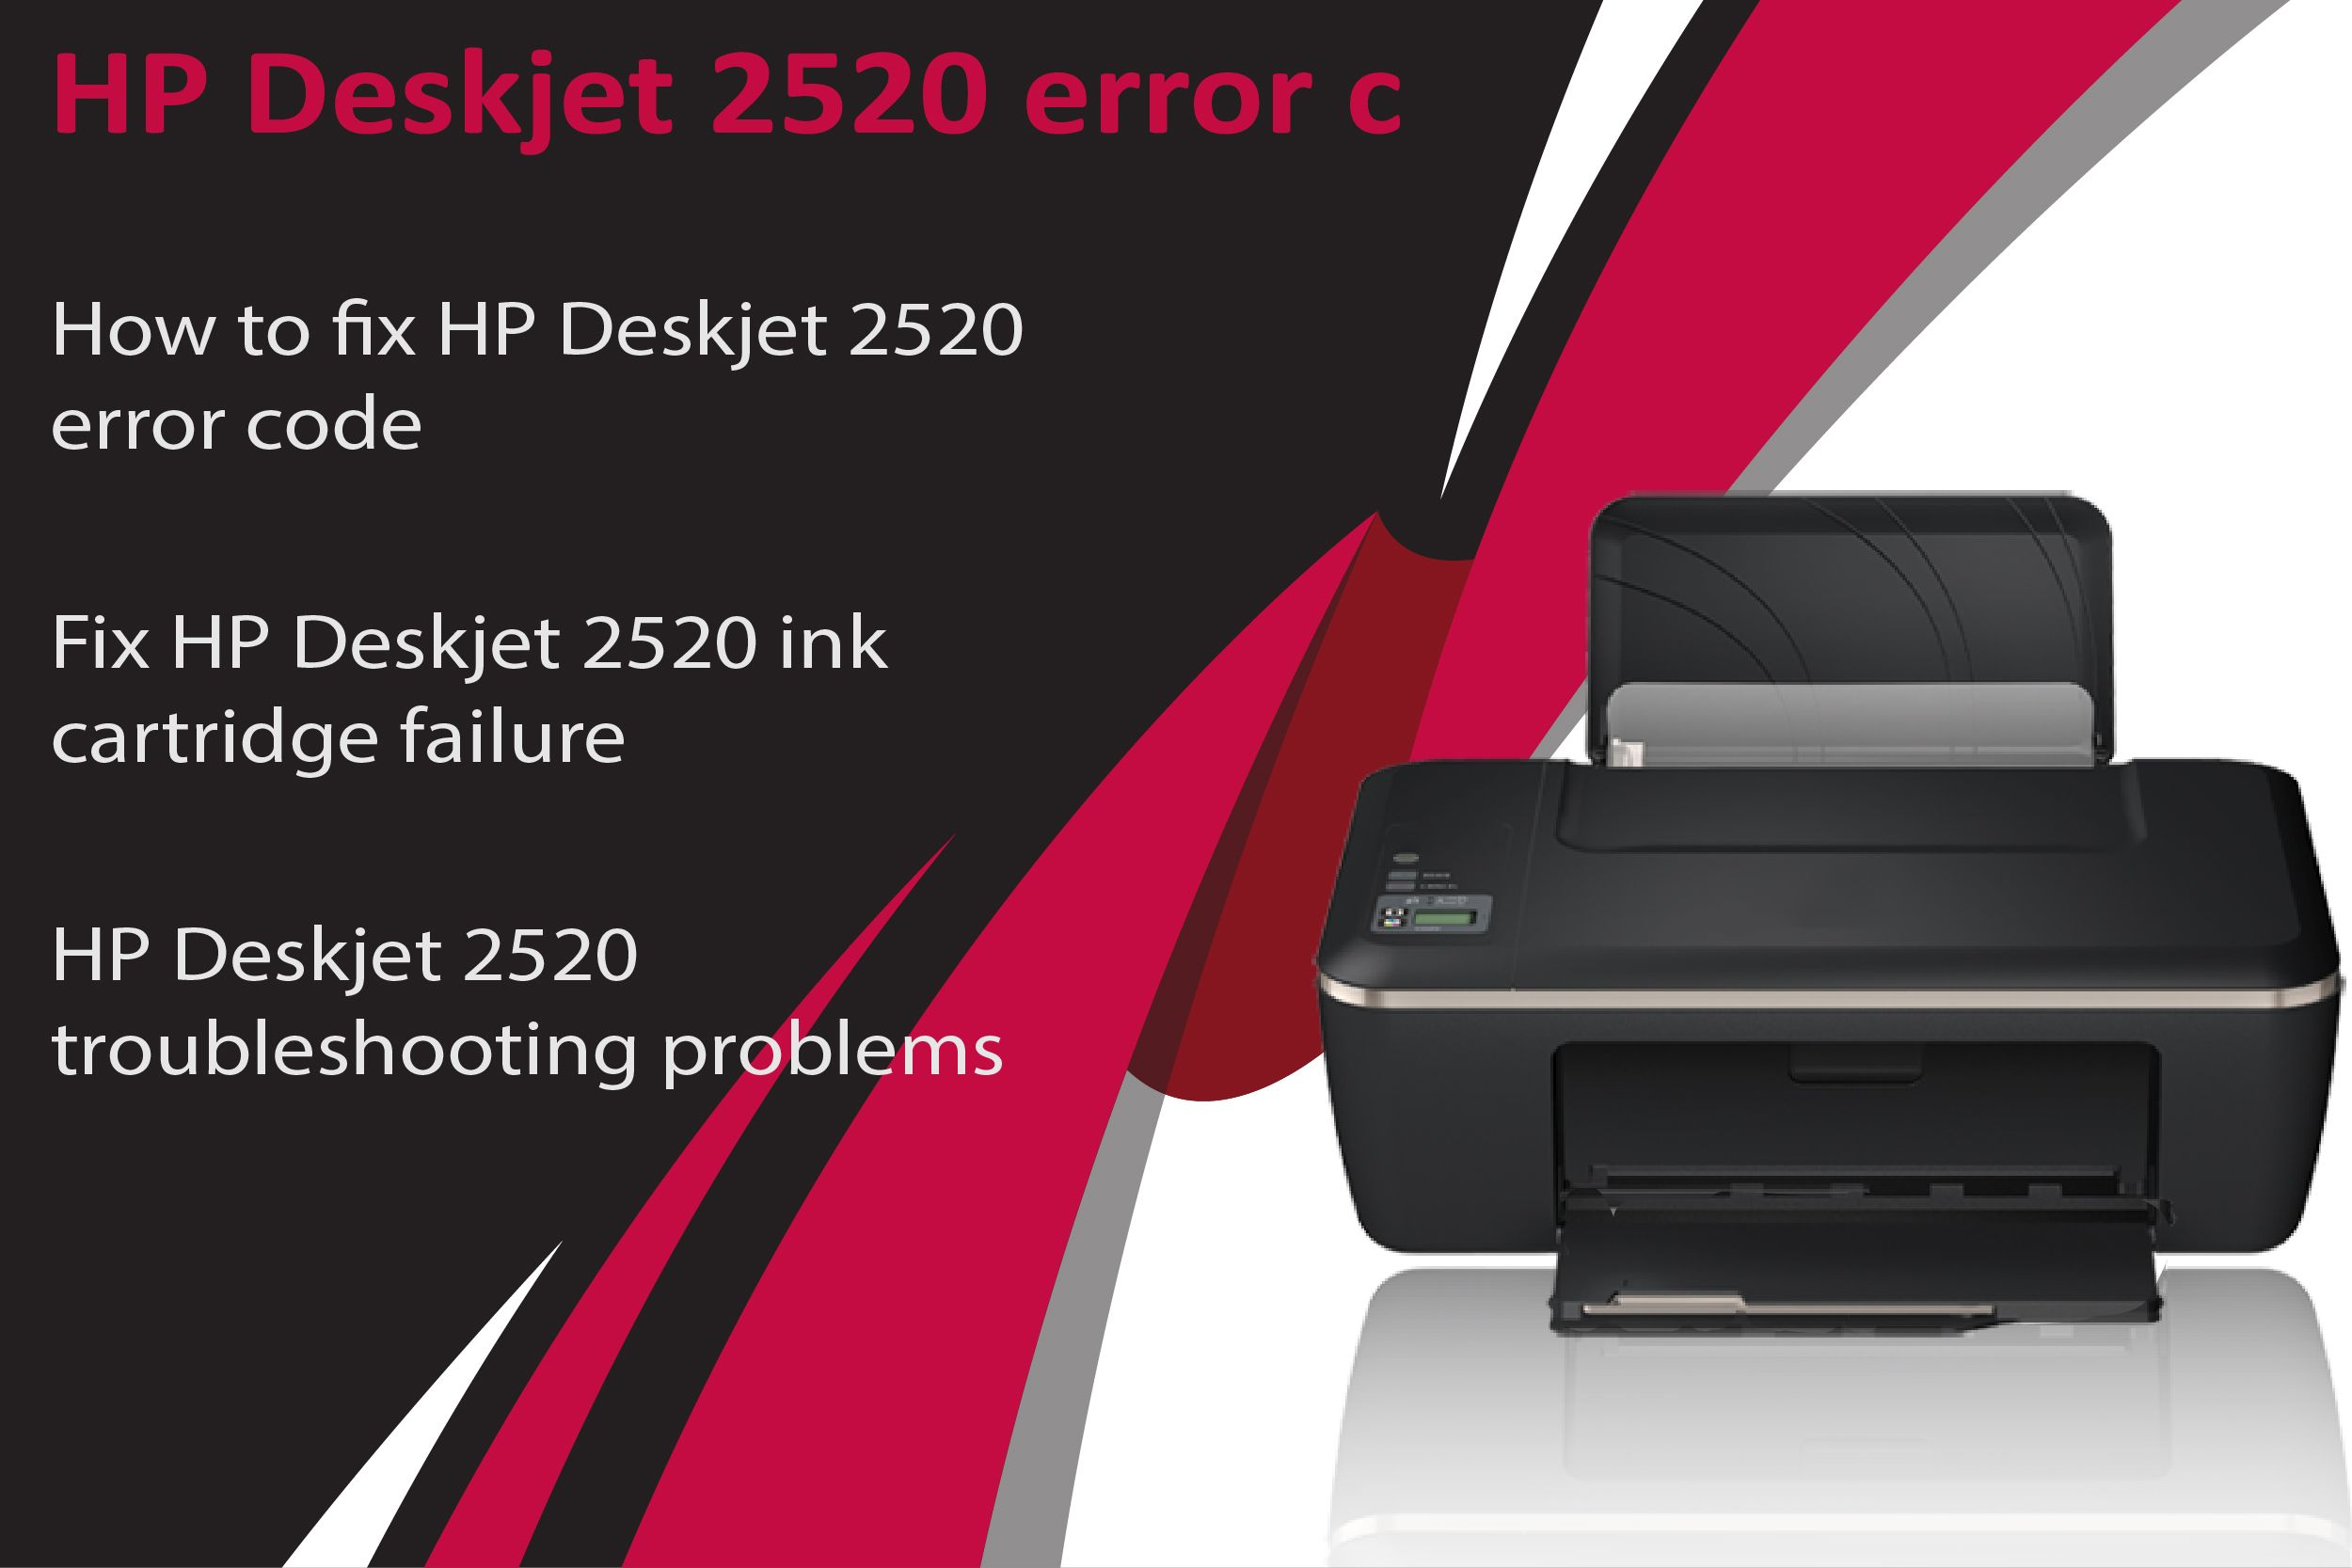 Simple guide available to resolve the hp deskjet 2520 printer error